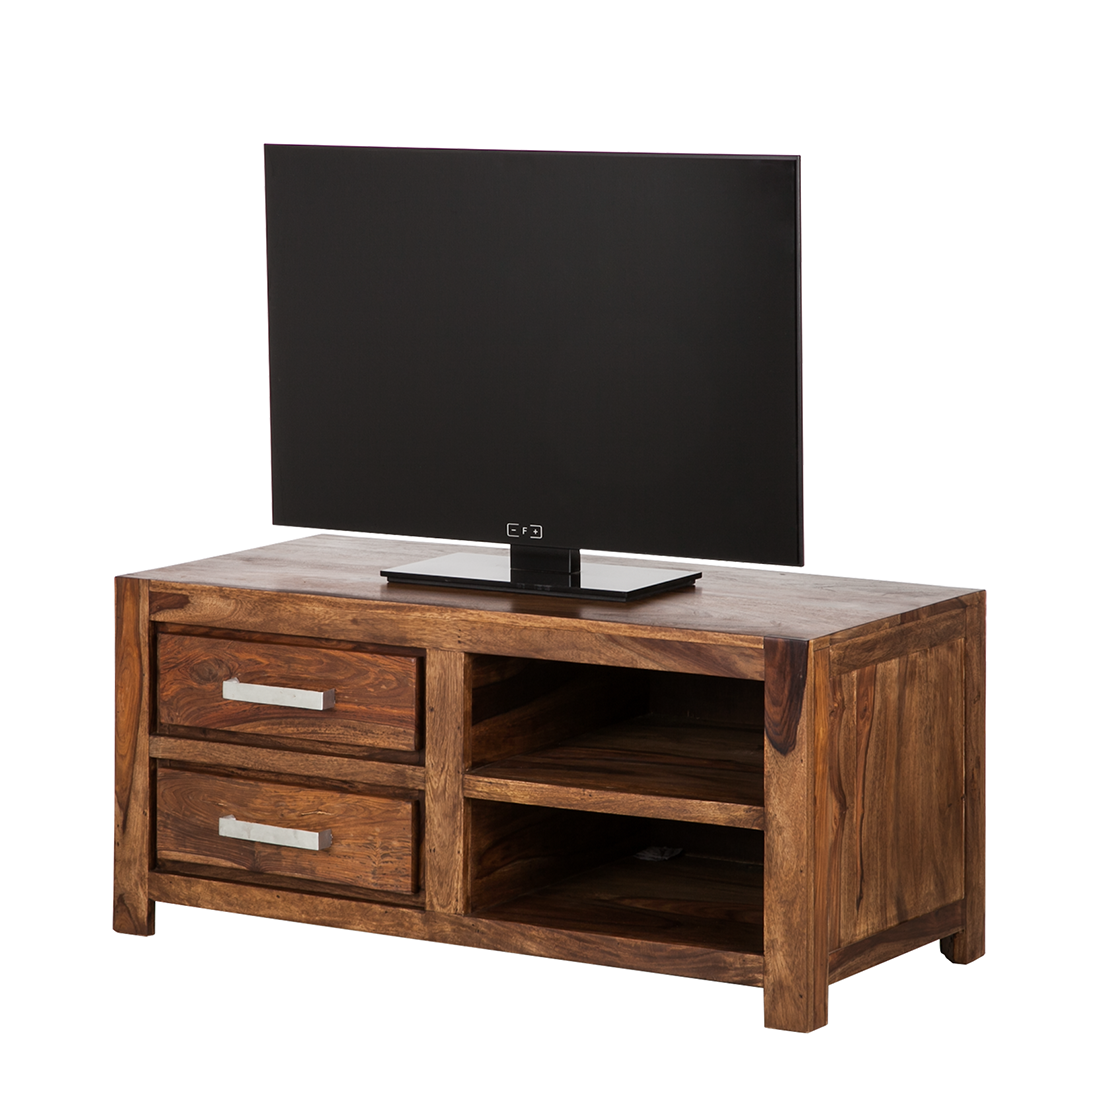 lowboard tv rack sheesham massivholz fernsehtisch hifi tv board schrank neu ebay. Black Bedroom Furniture Sets. Home Design Ideas